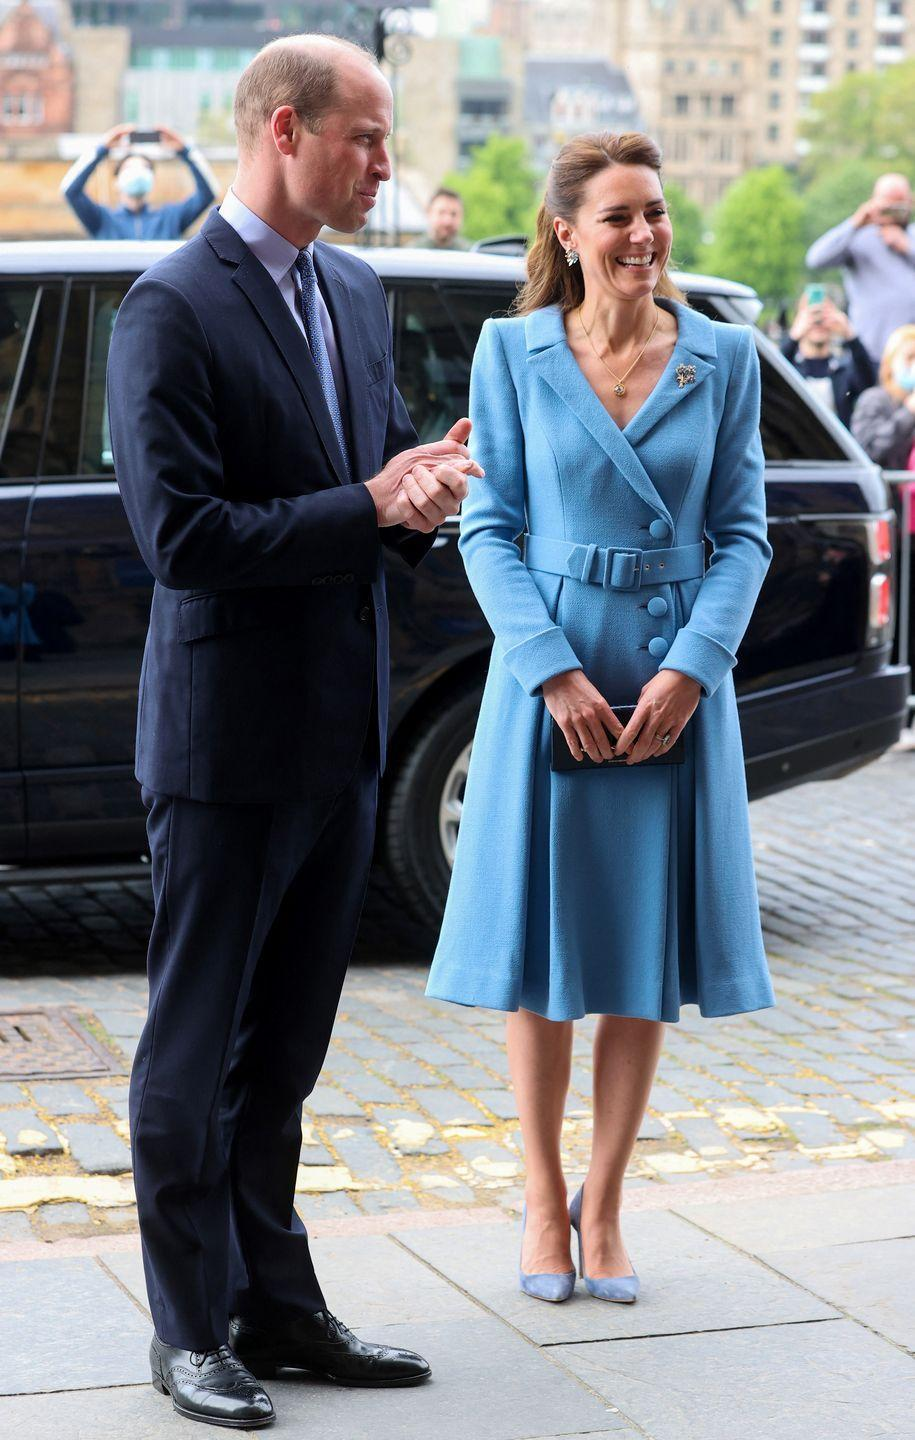 <p>For her final look on her final day in Scotland, the Duchess of Cambridge chose a chic powder blue Catherine Walker coat. The Duke even coordinated with his wife, sporting a blue tie and navy suit. </p>